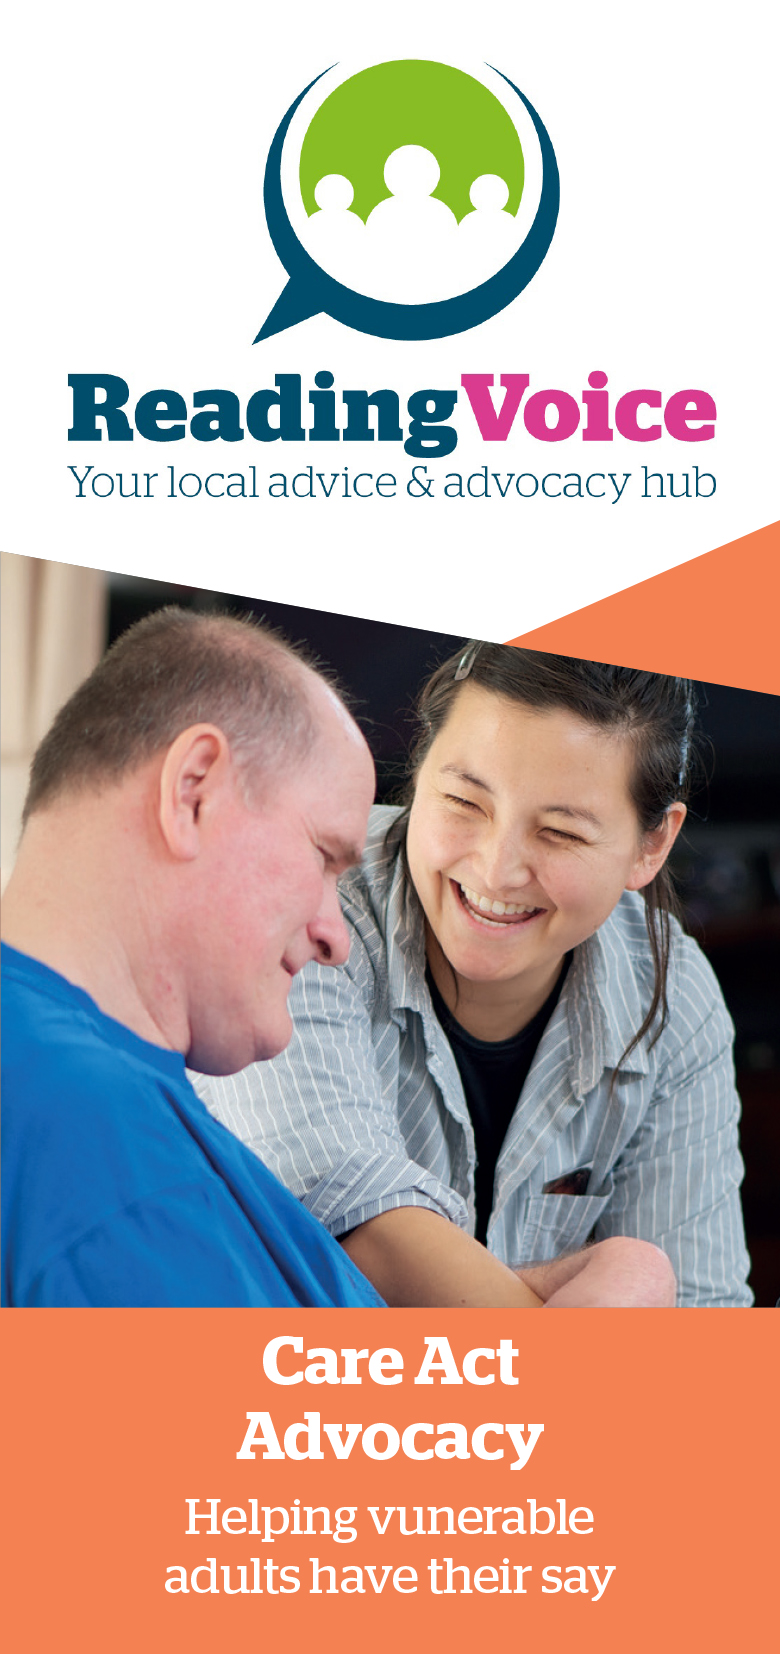 Care Act Advocacy Leaflet